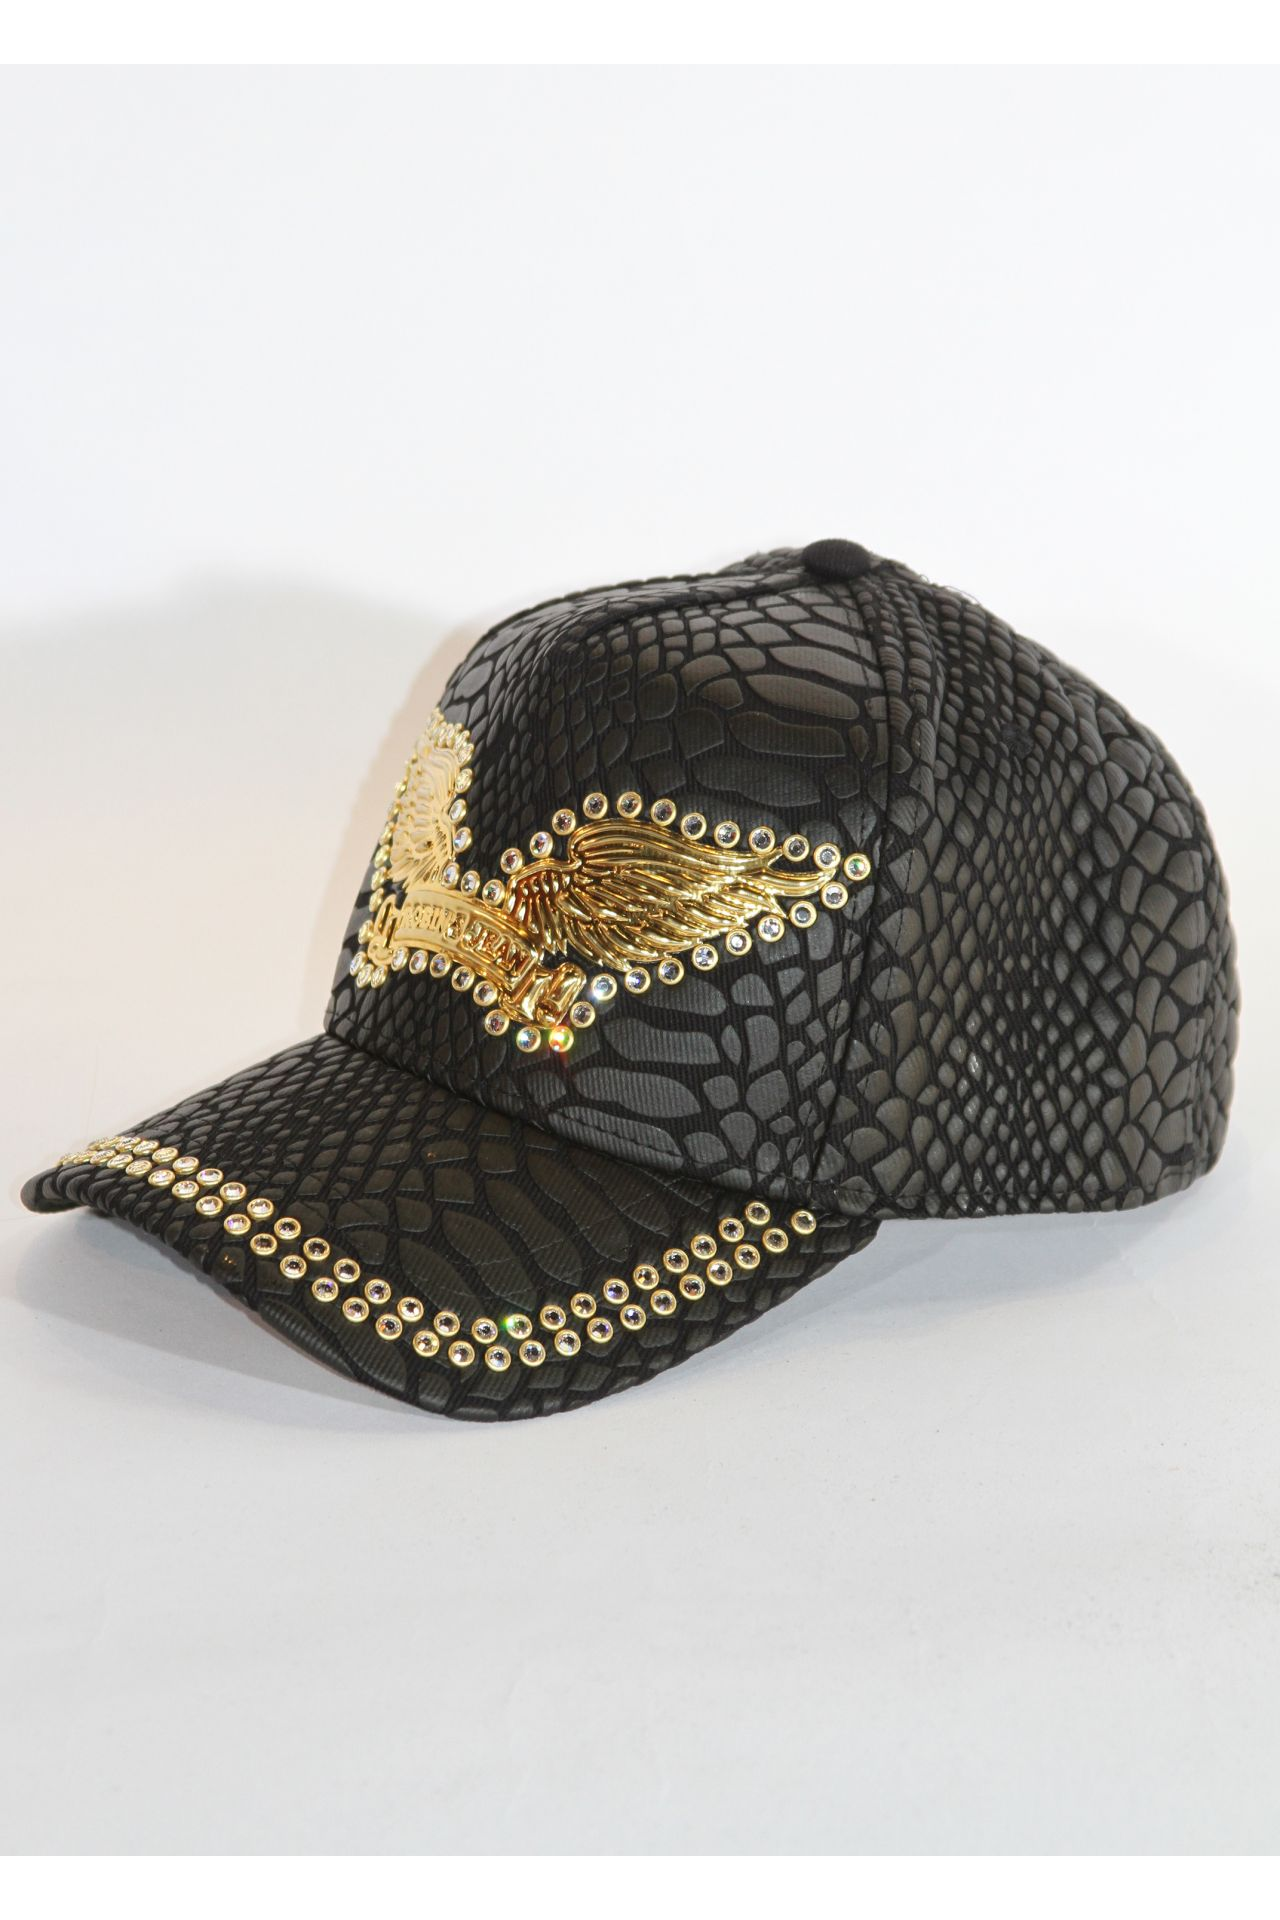 CRACKLE HAT IN BLACK WITH CLEAR CRYSTALS